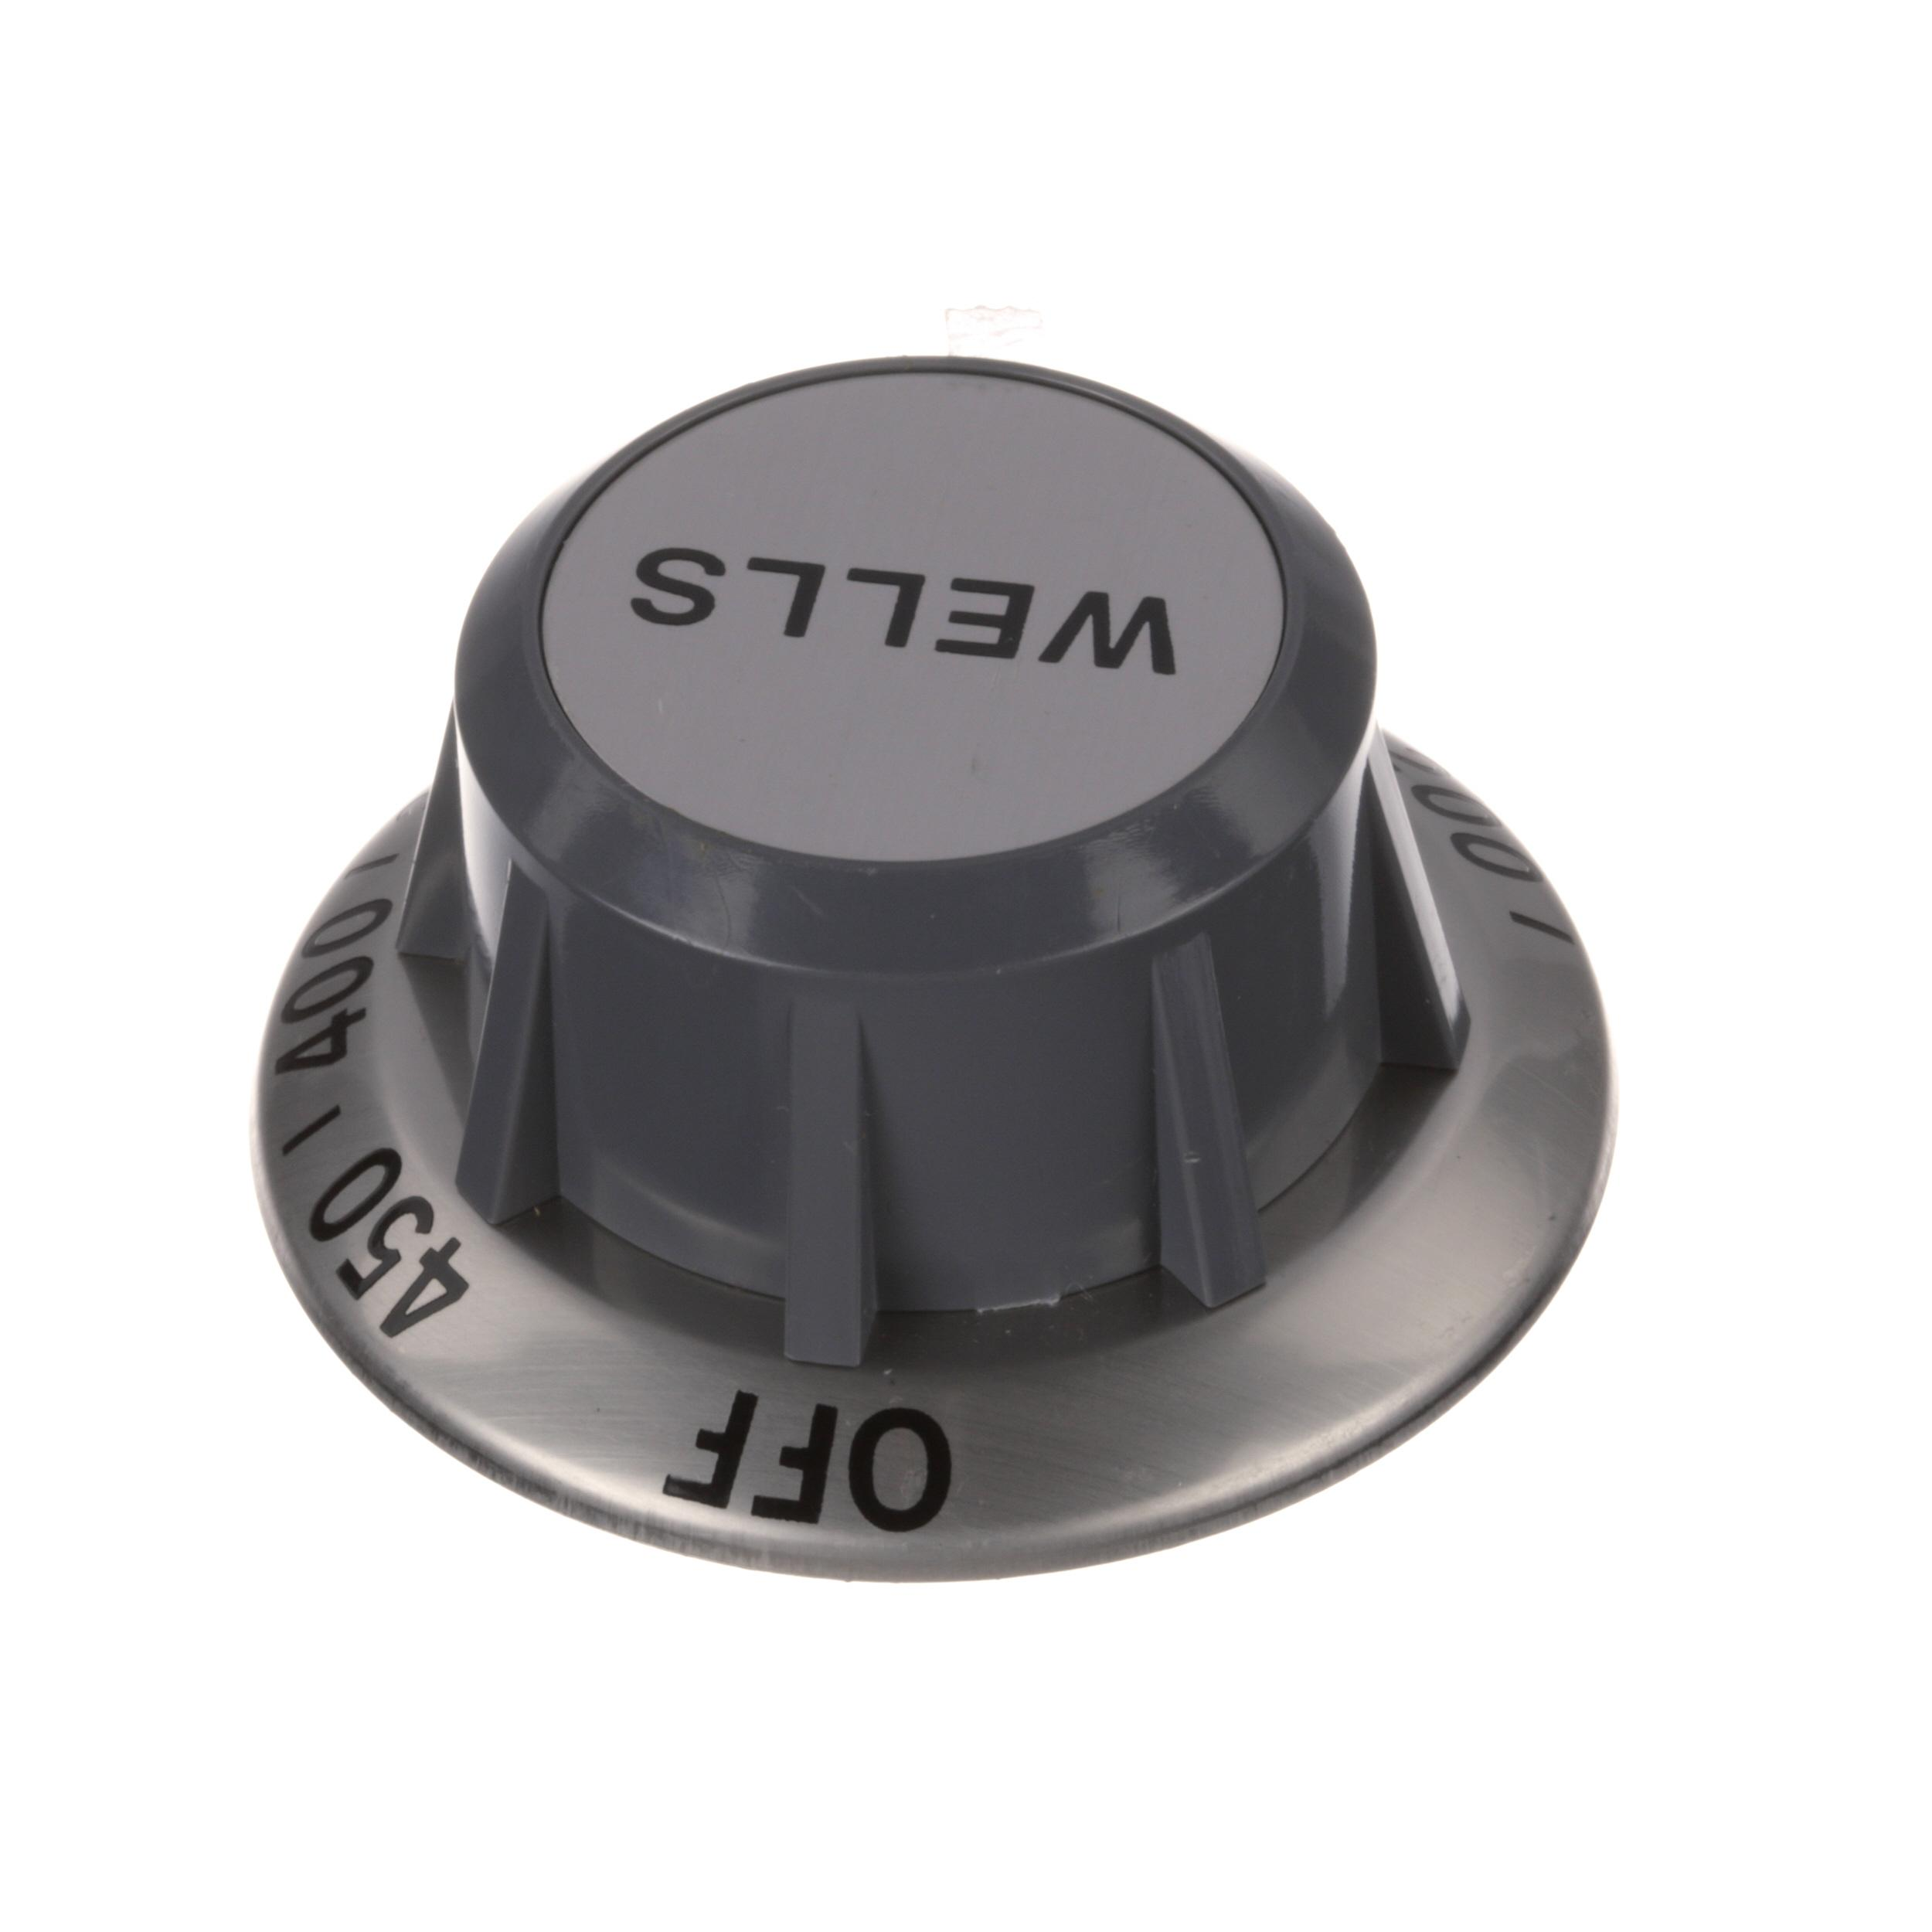 WELLS GRIDDLE T-STAT KNOB